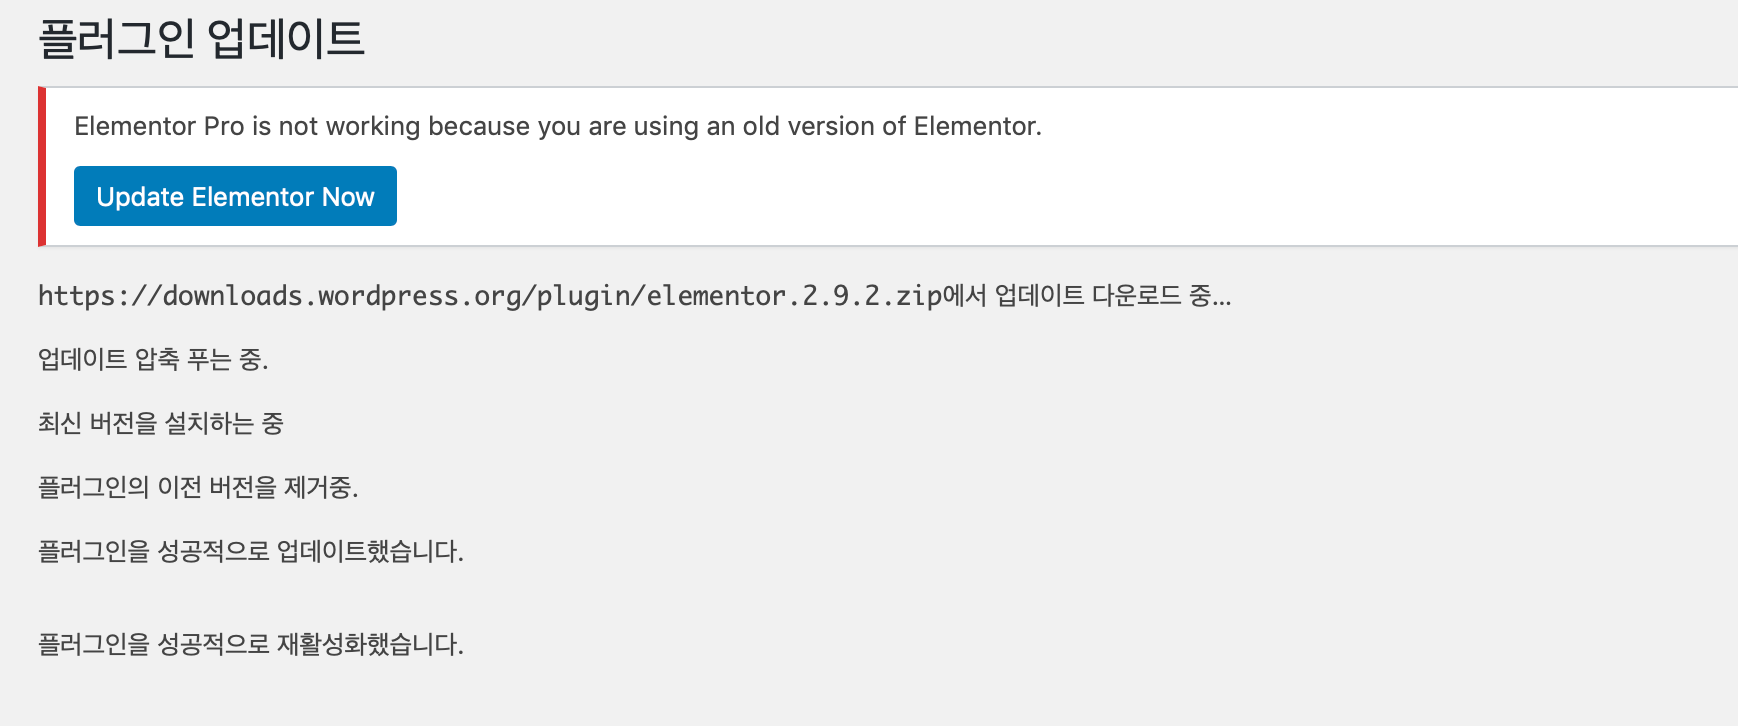 에러메시지 Elementor Pro is not working because you are using an old version of Elementor